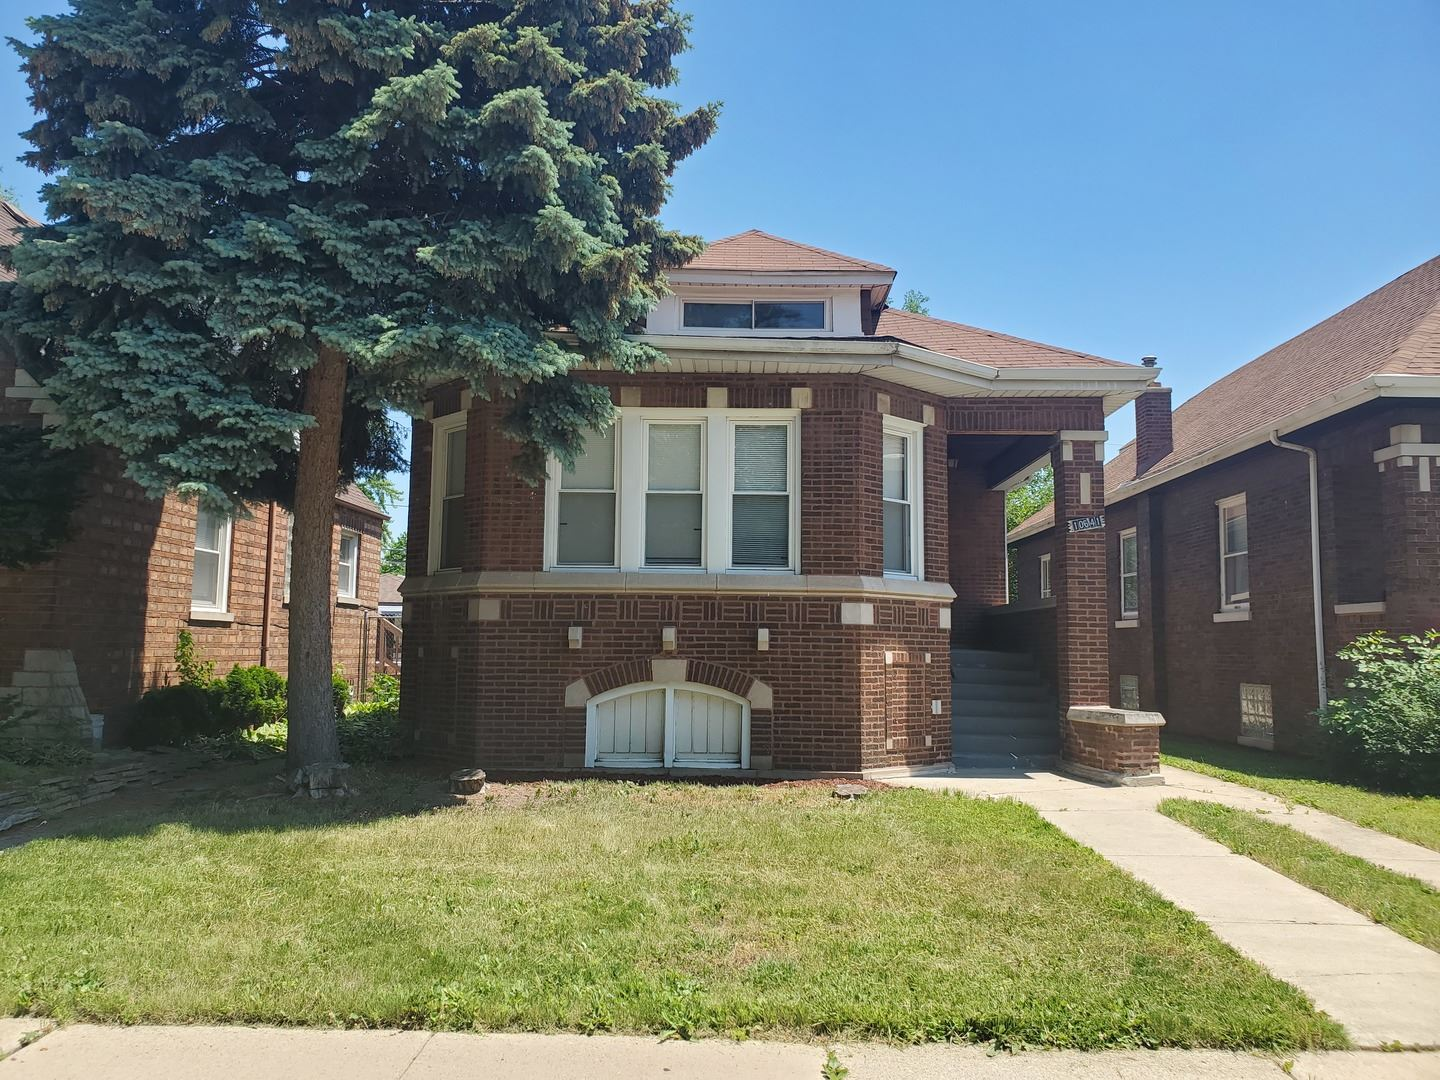 Photo for 10641 S Normal Avenue, Chicago, IL 60628 (MLS # 11127752)